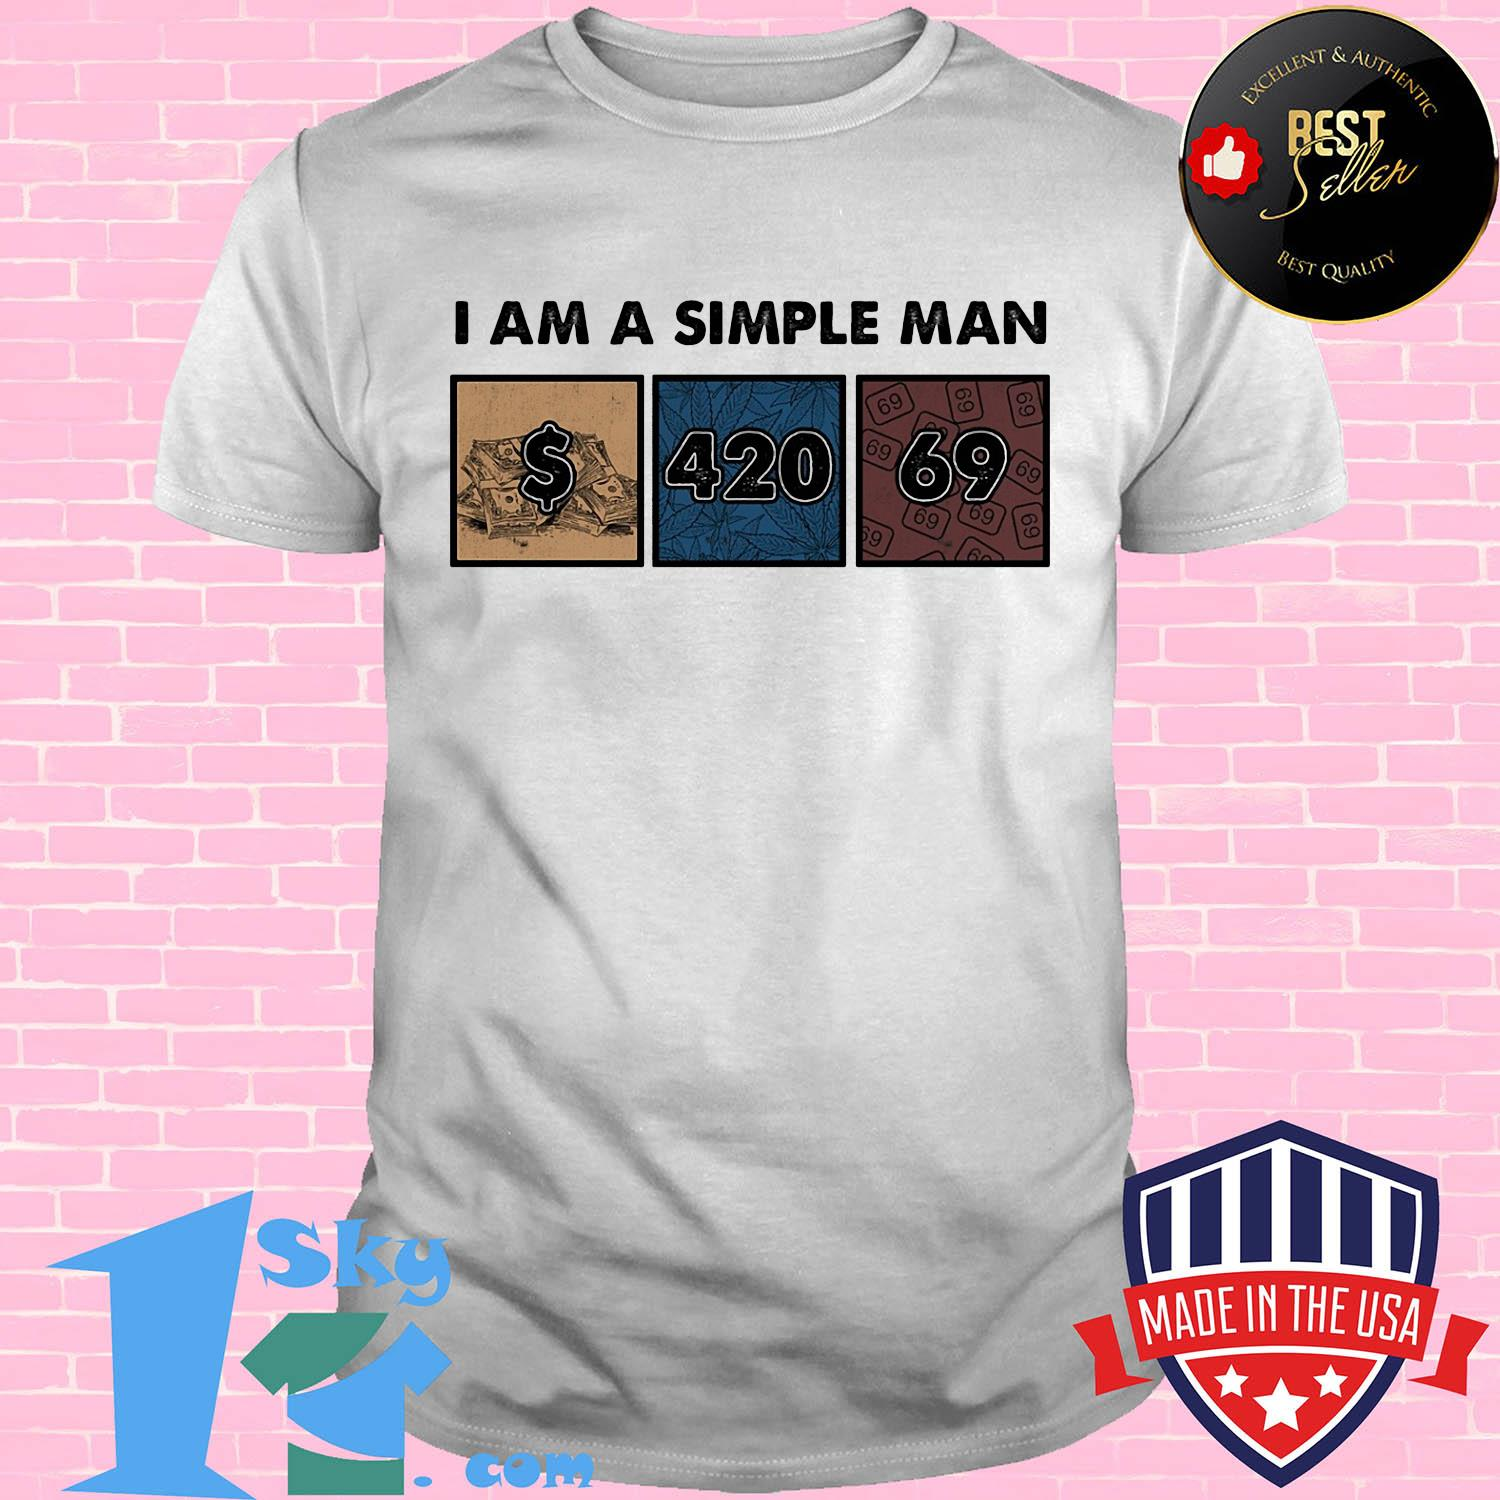 I am a simple man like money weed and 69 shirt